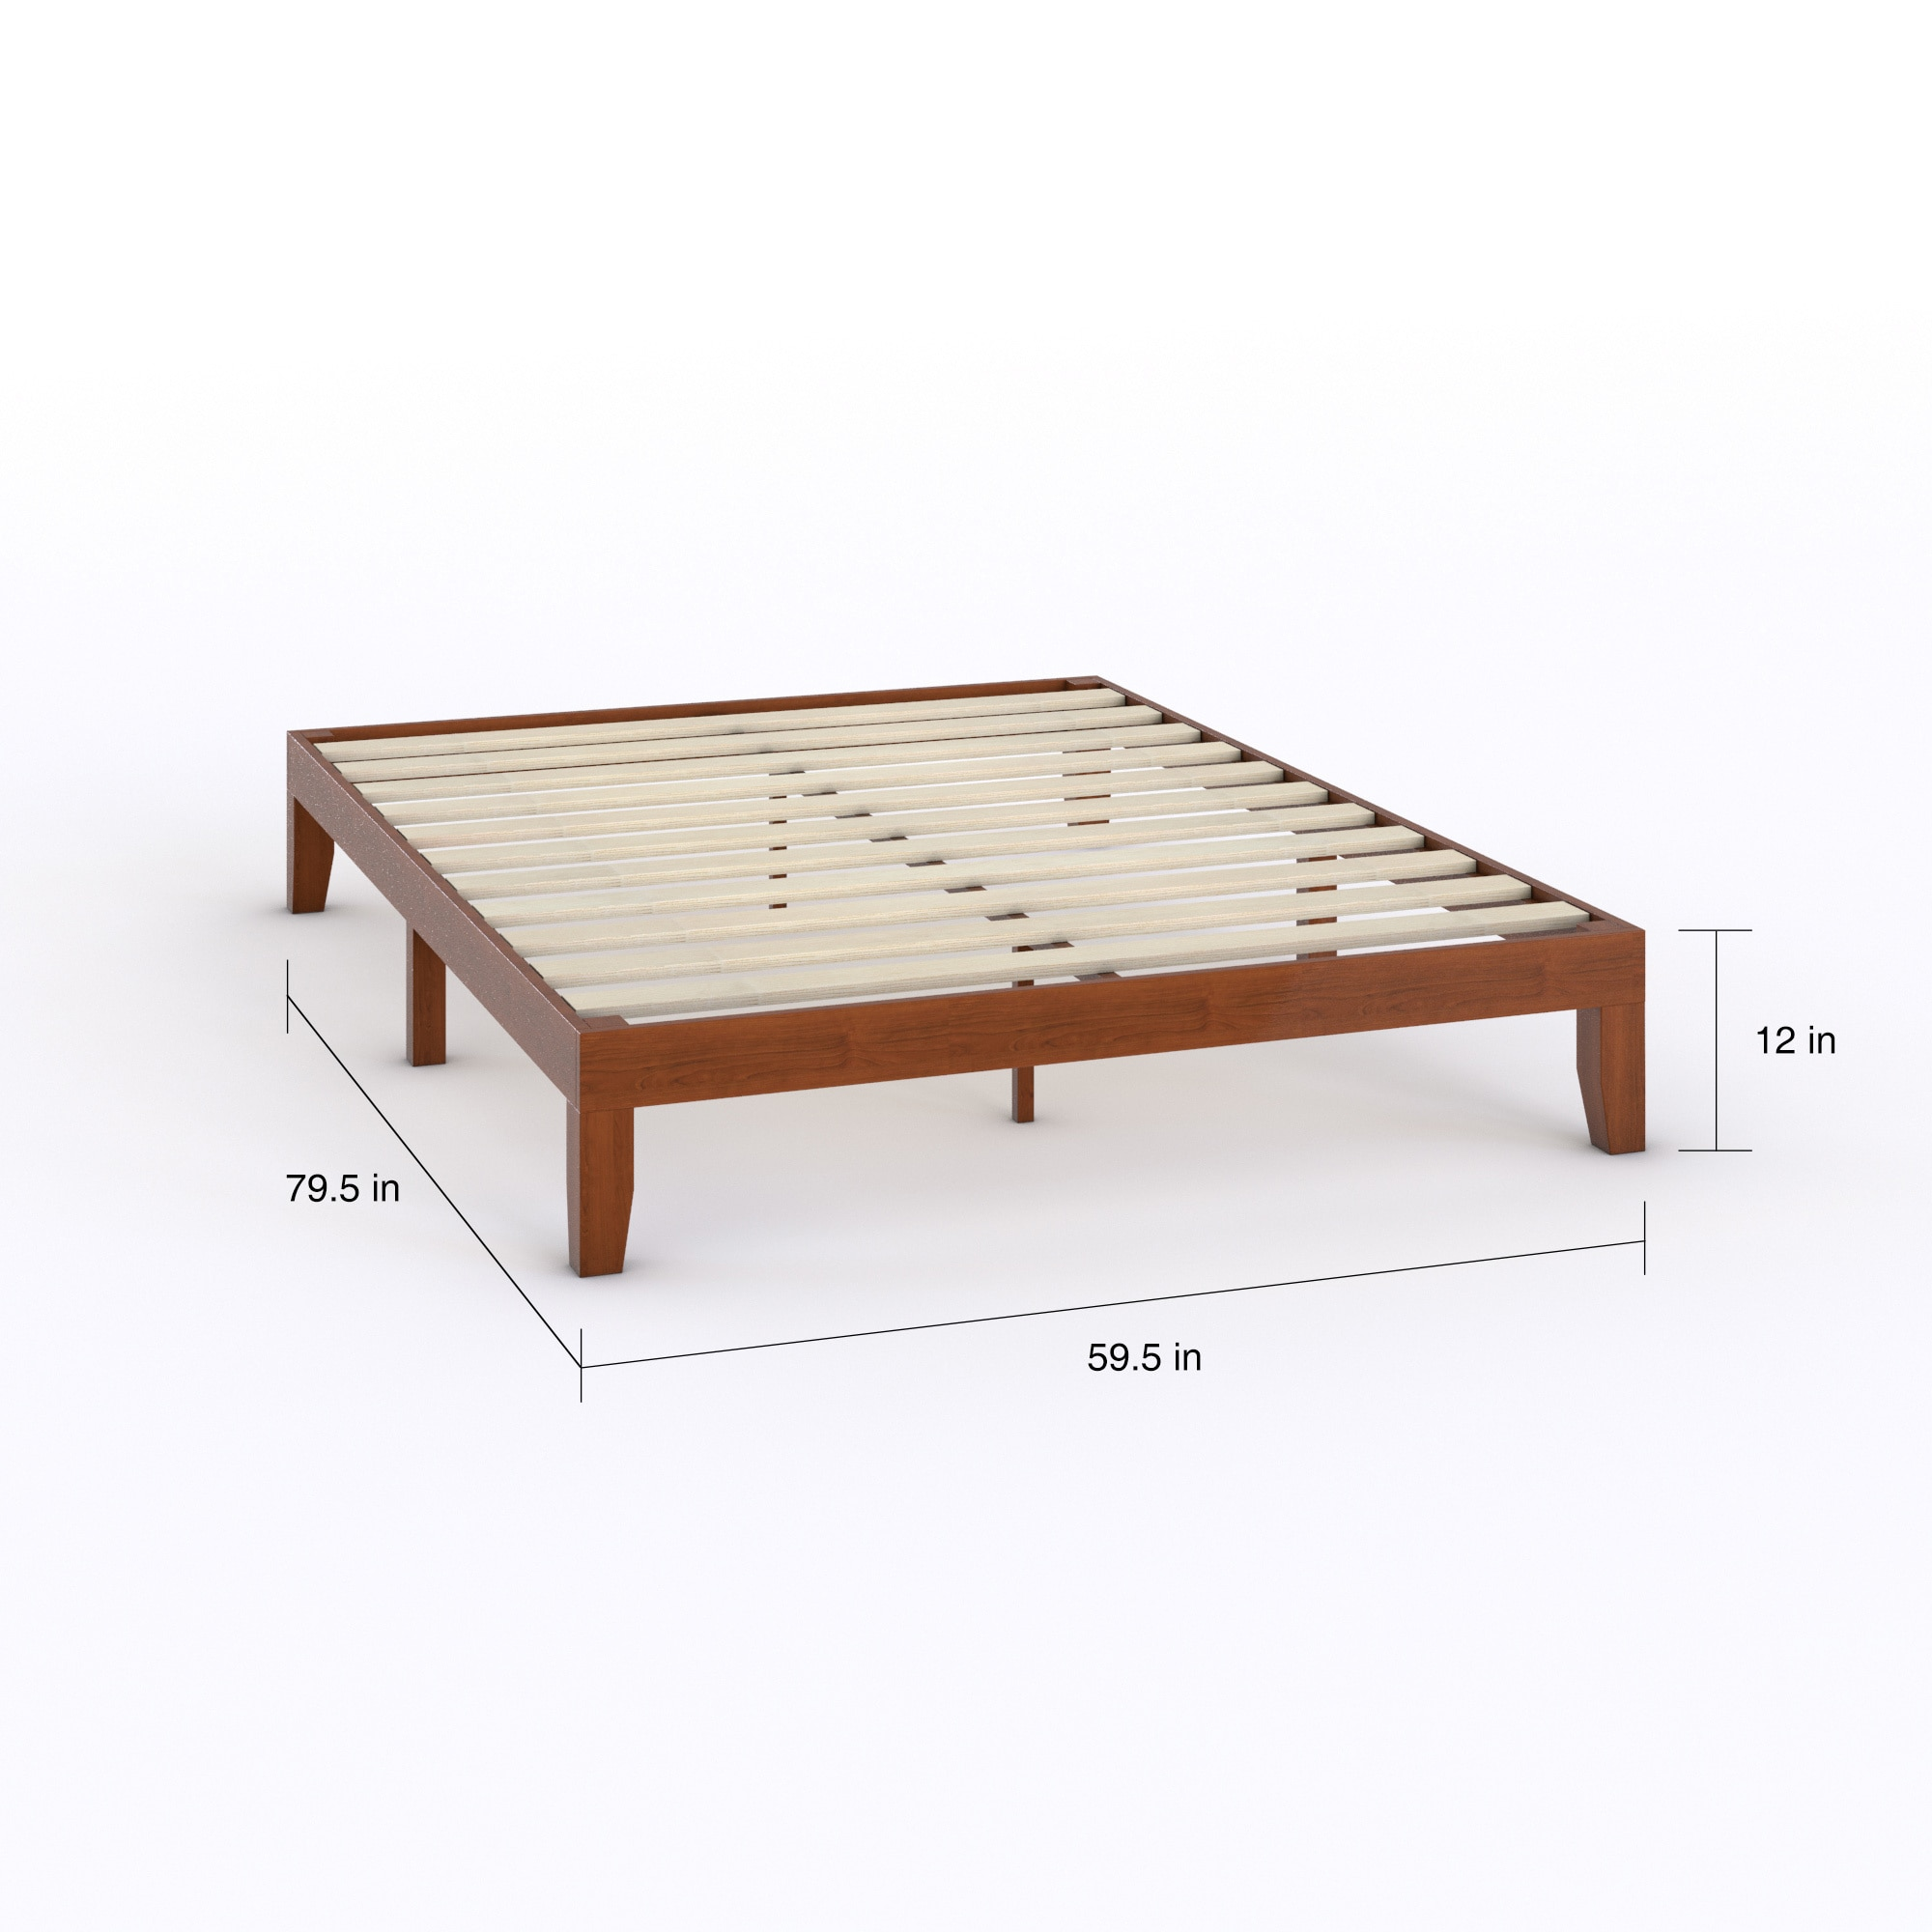 as a bedroom epic using wells shay plus furniture mattress bed floating storage for size stair king zq exquisite appealing wooden blanket queen frame metal pattern platform flower base red